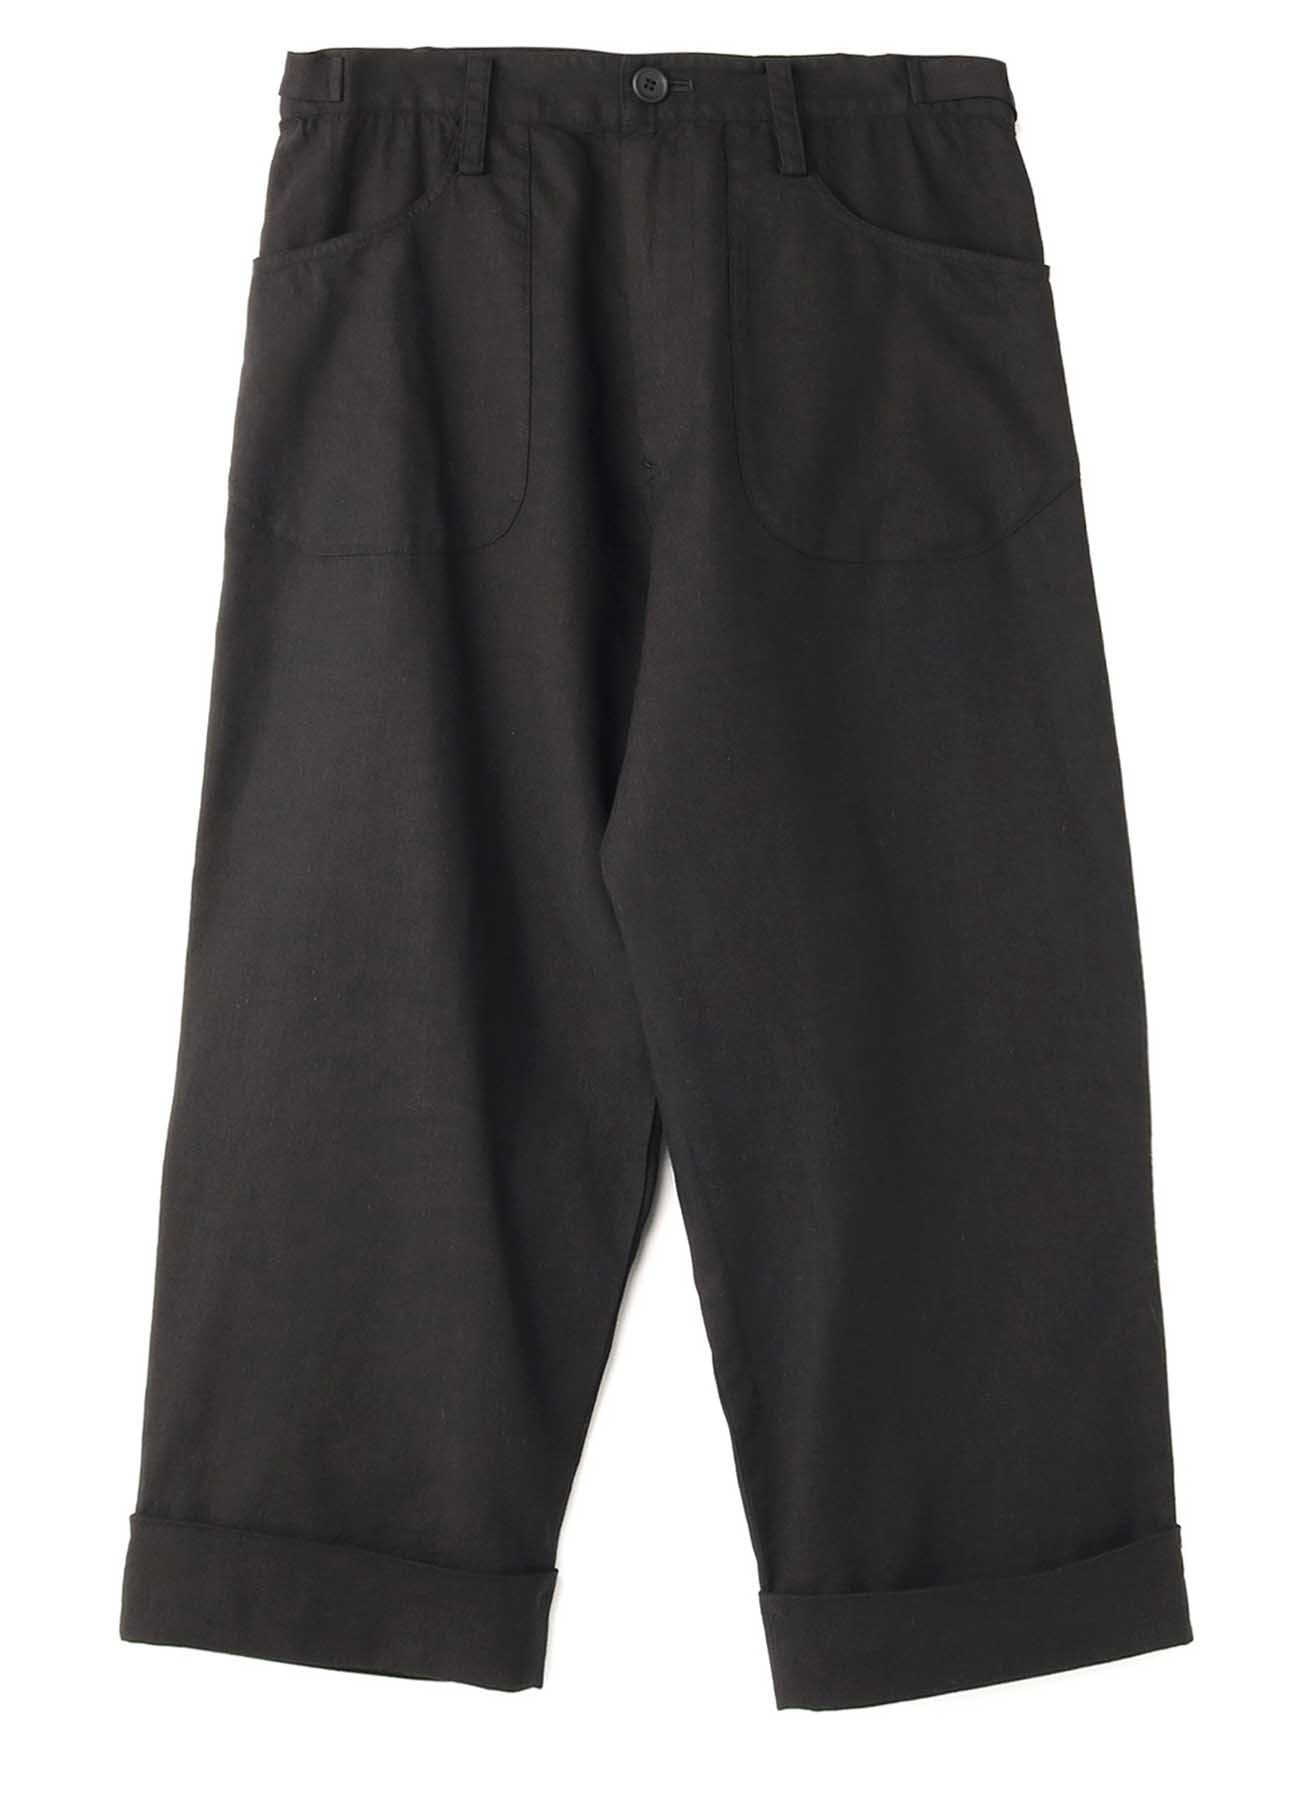 OUT POCKET PANTS